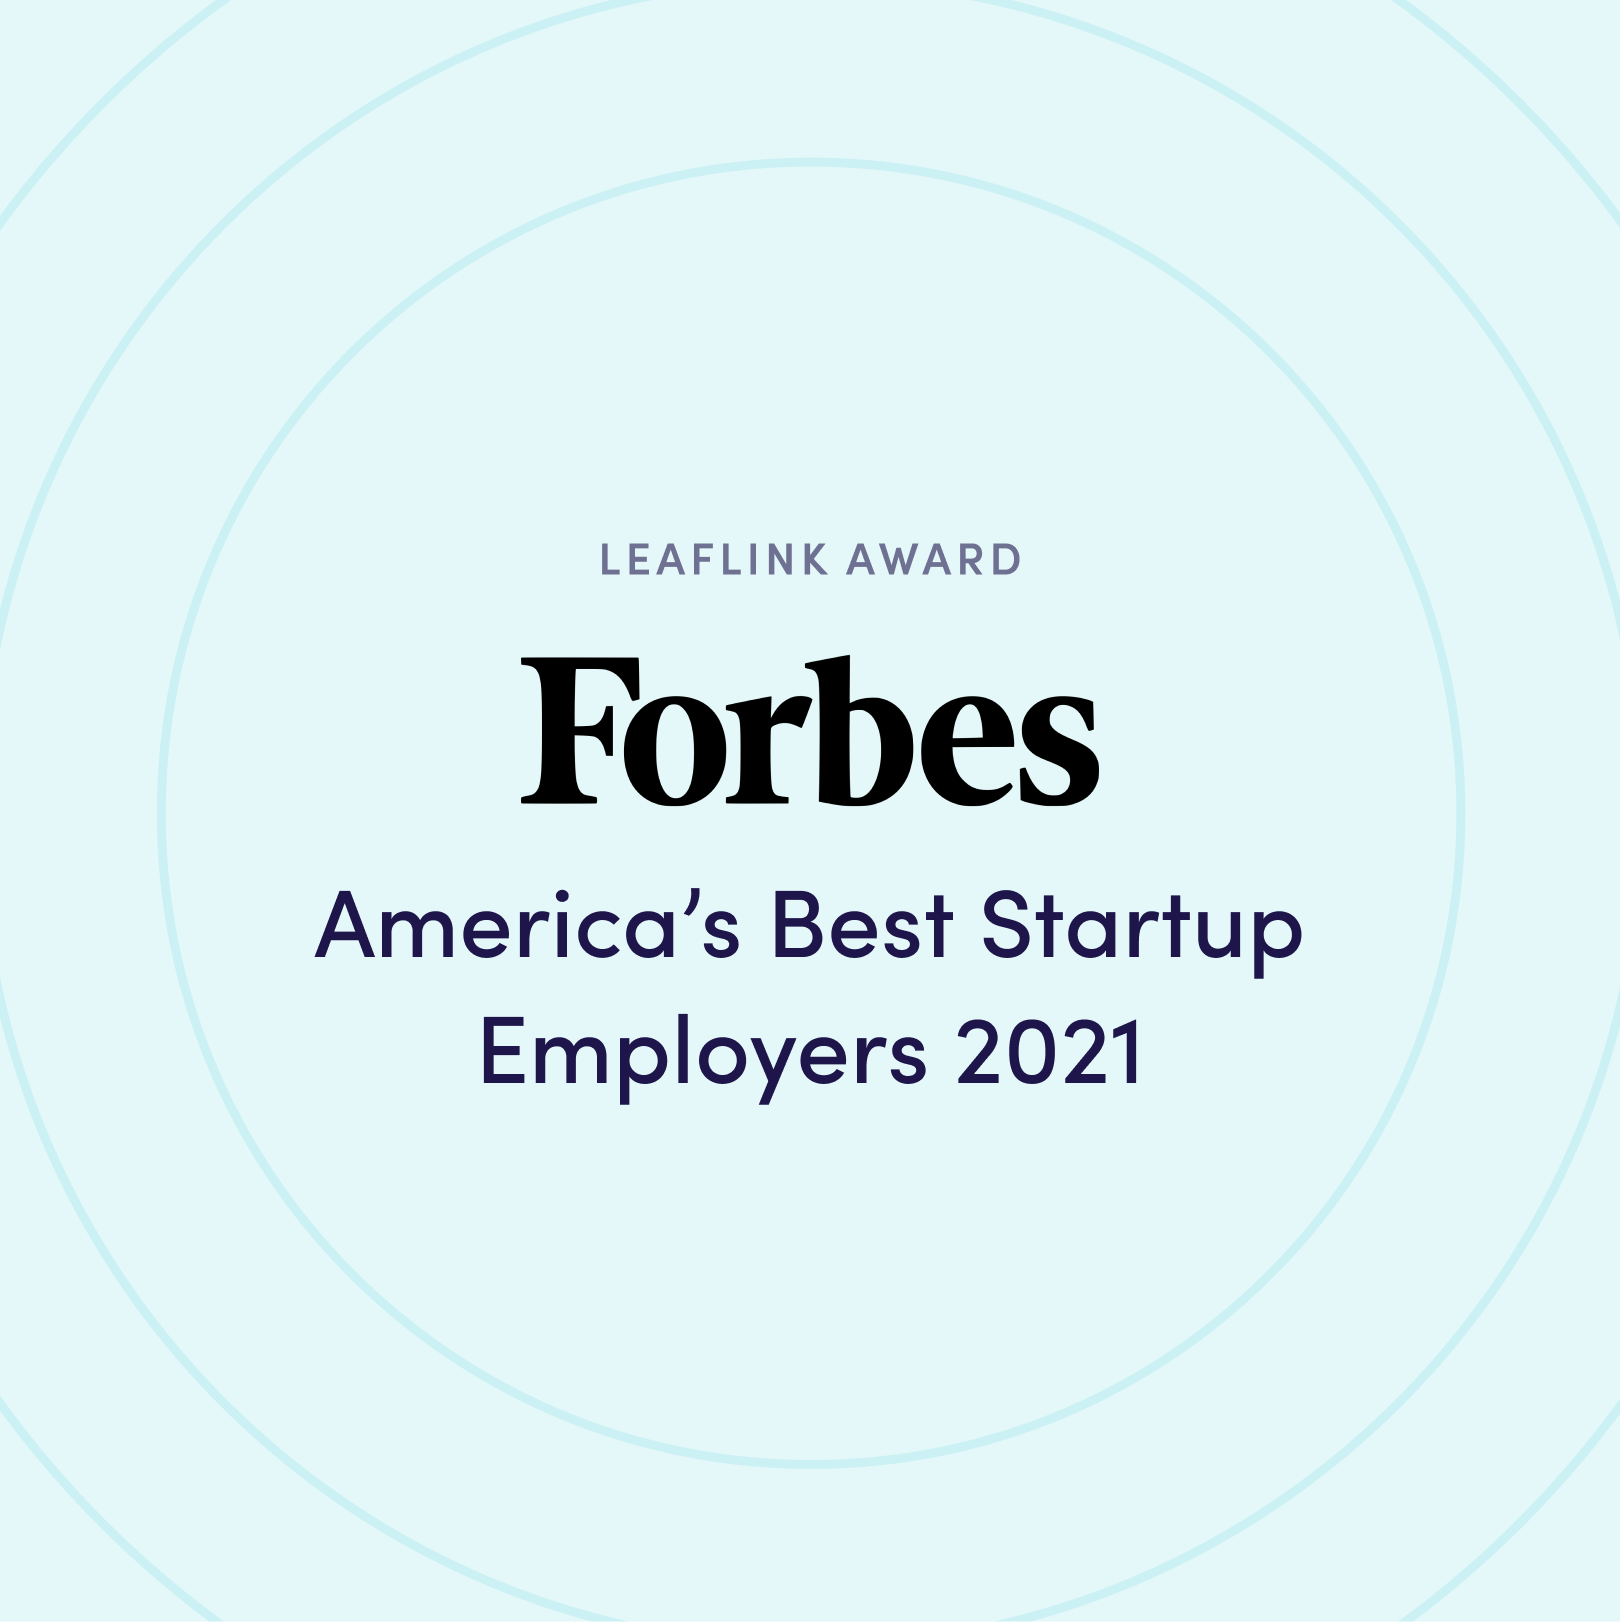 Forbes - America's Best Startup Employers 2021